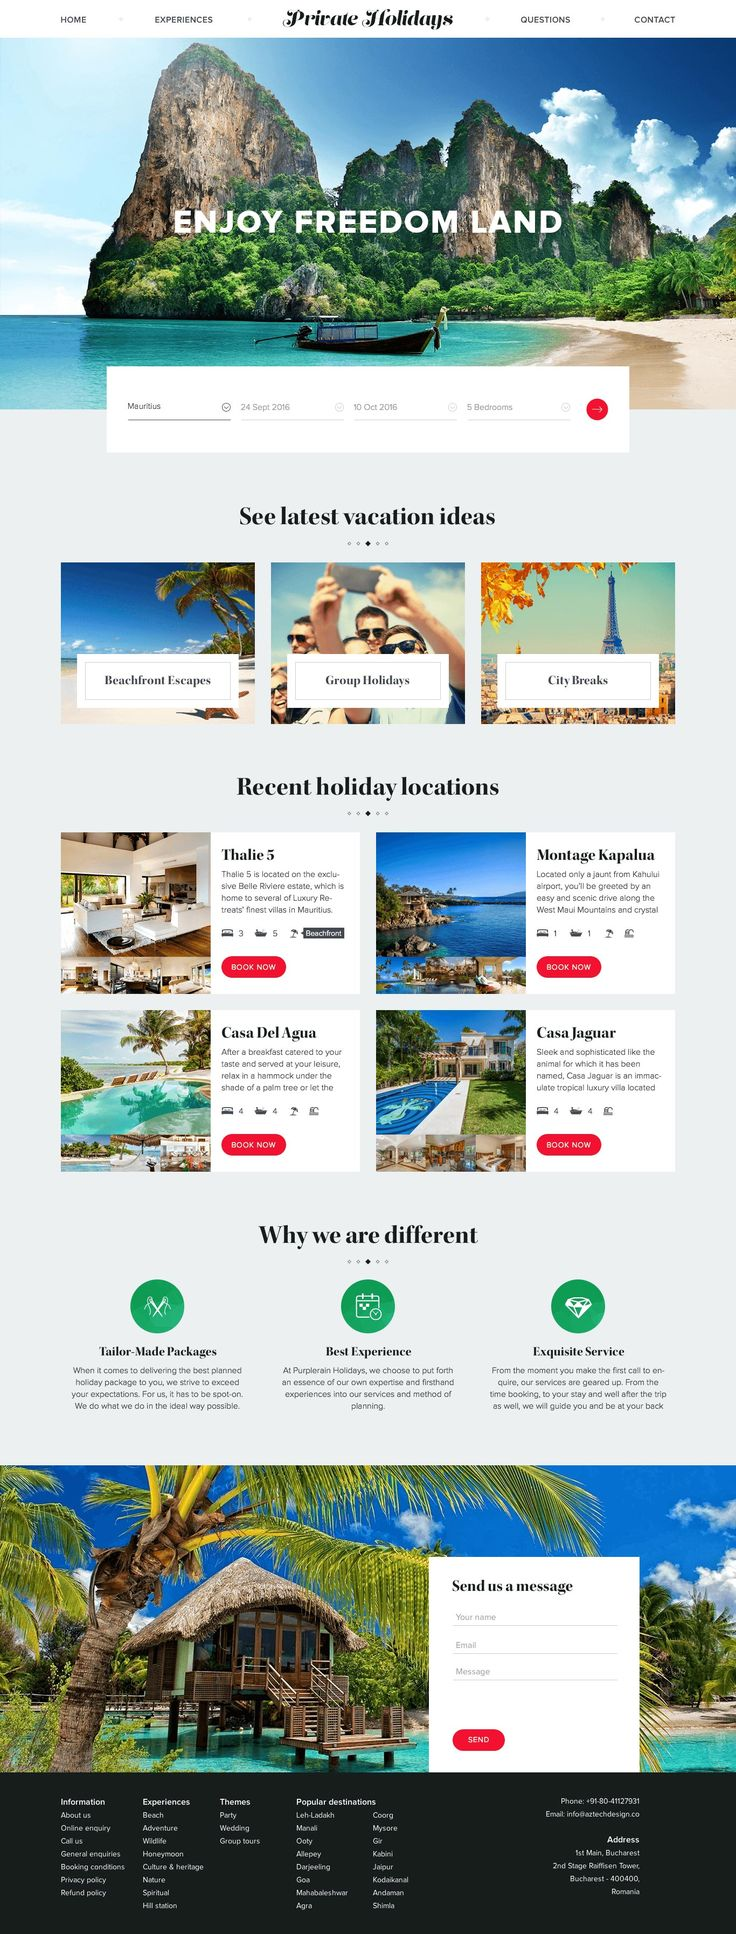 Top 25+ Best Travel Website Design Ideas On Pinterest | Site Design, Web  Design And Website Layout